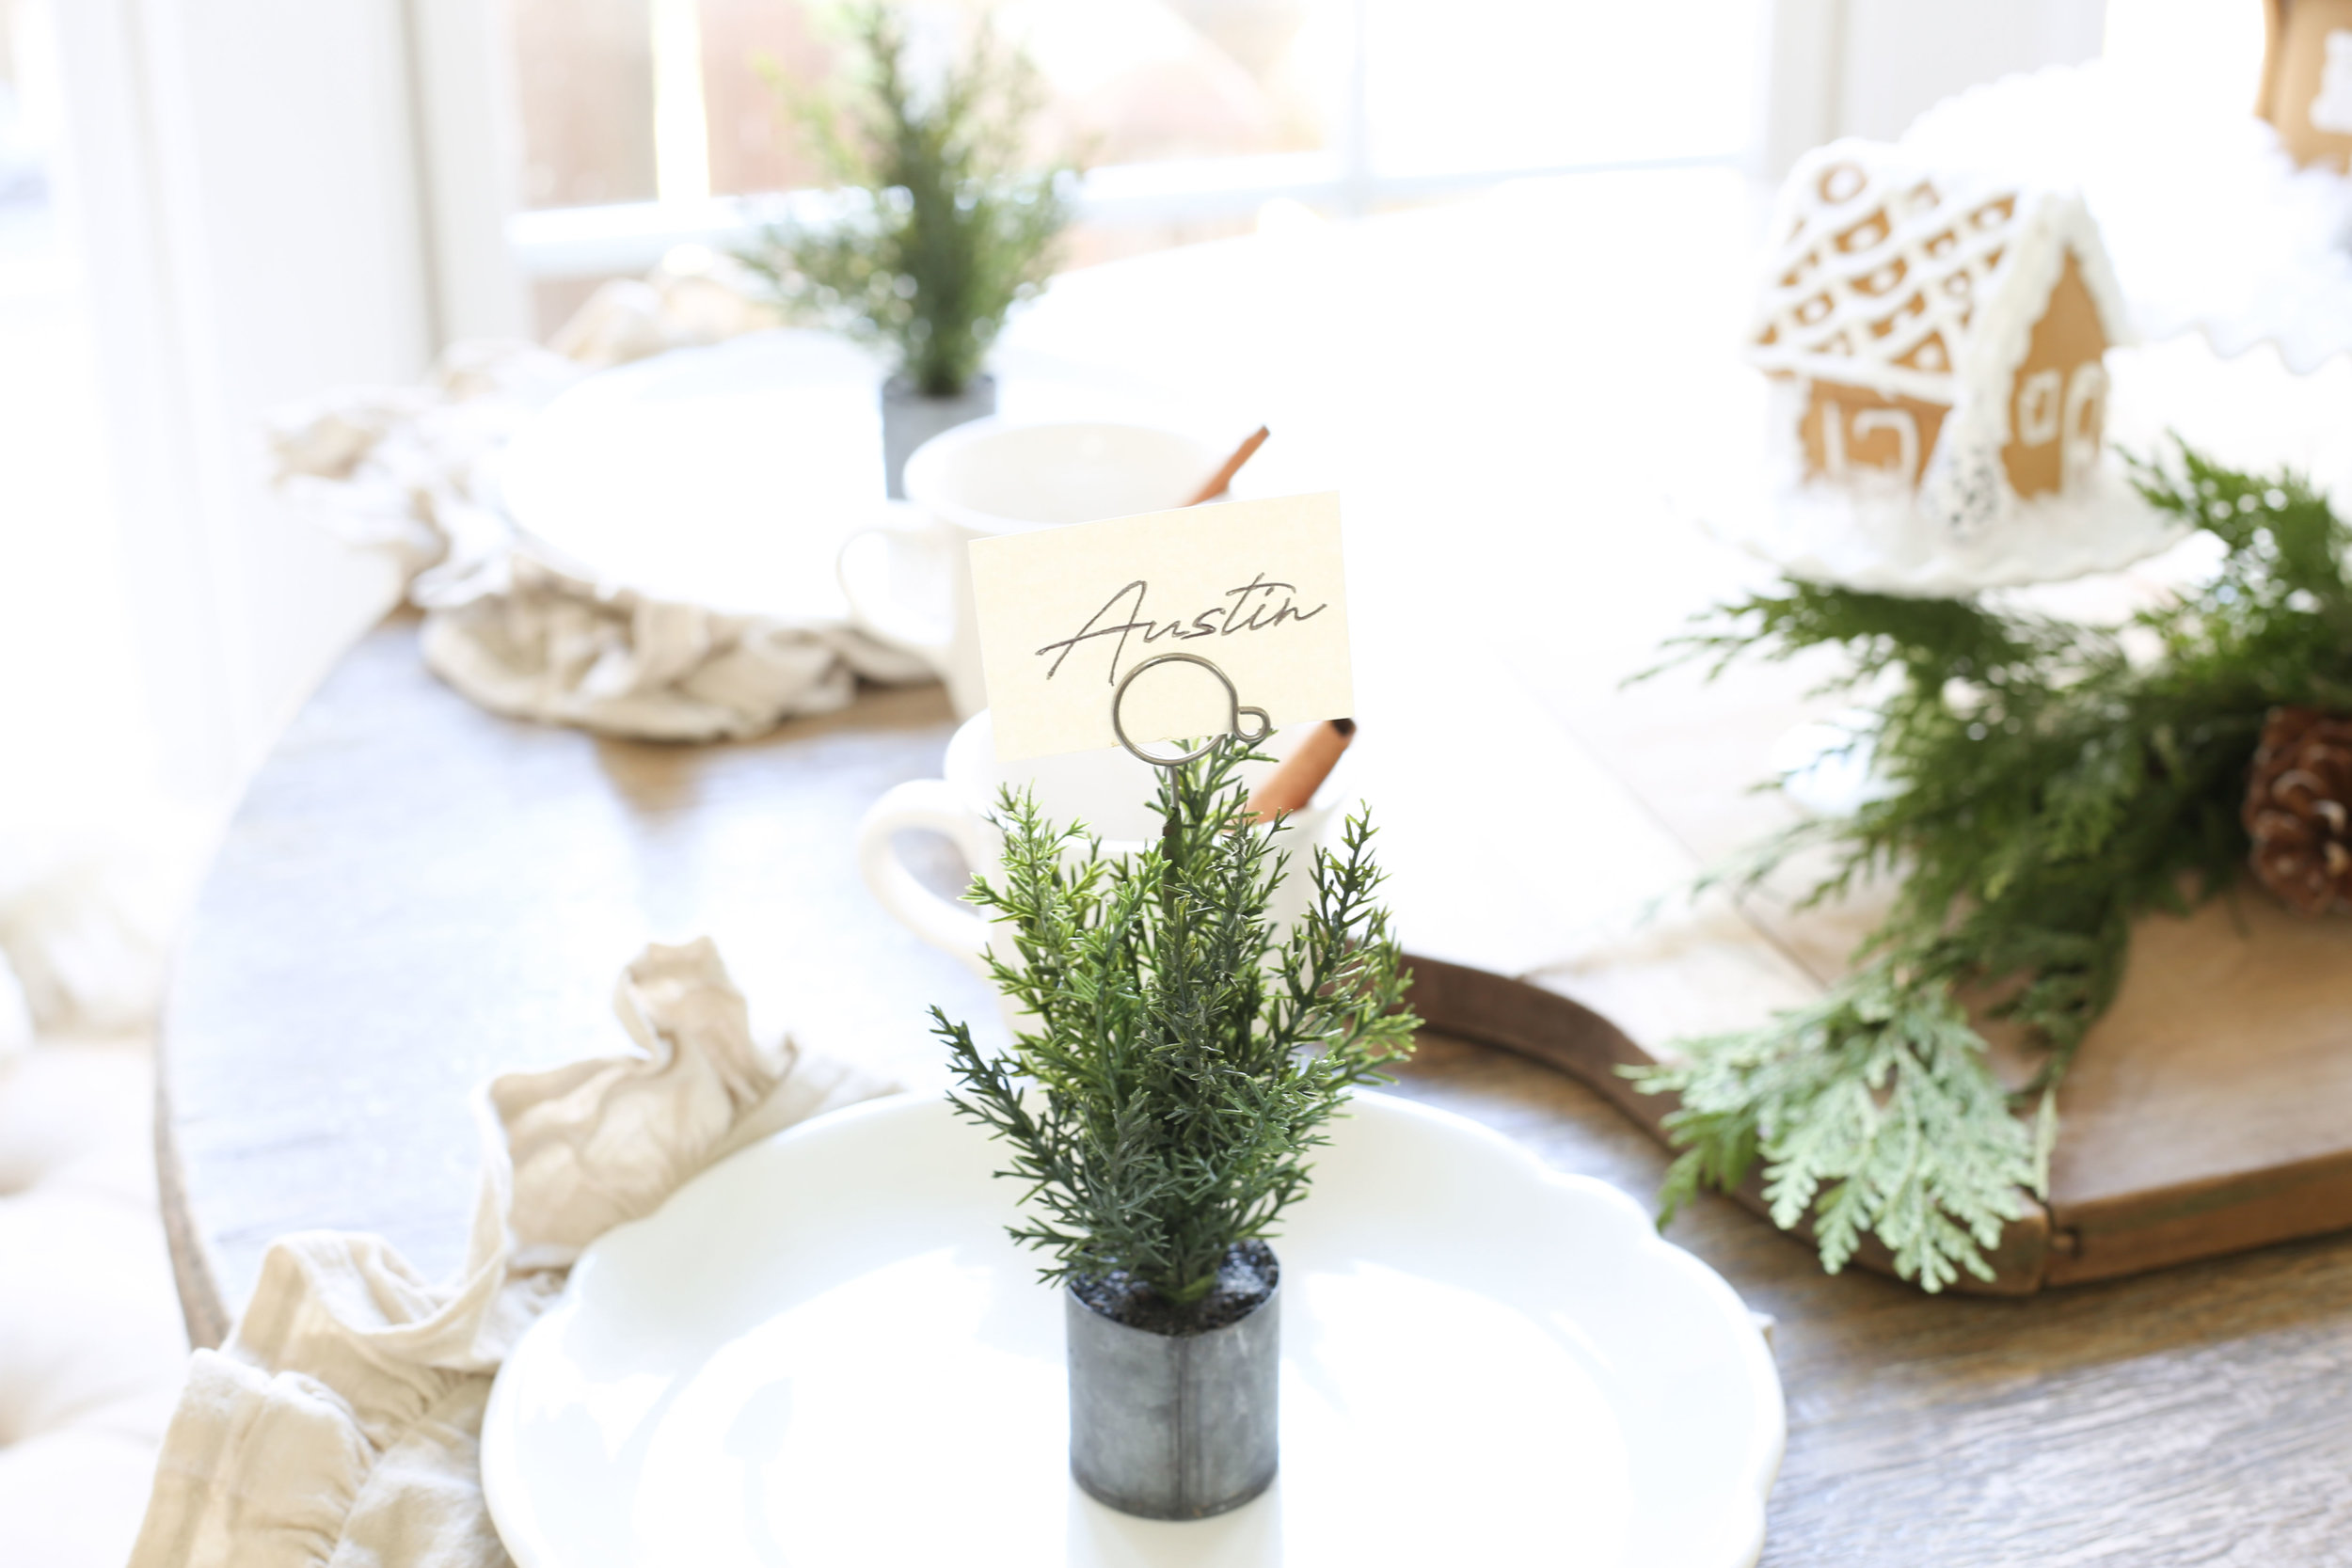 Christmas 2017 Home Tour: Deck The Blogs- Place Setting with Place Card Holder- Plum Pretty Decor & Design's Christmas Home Tour